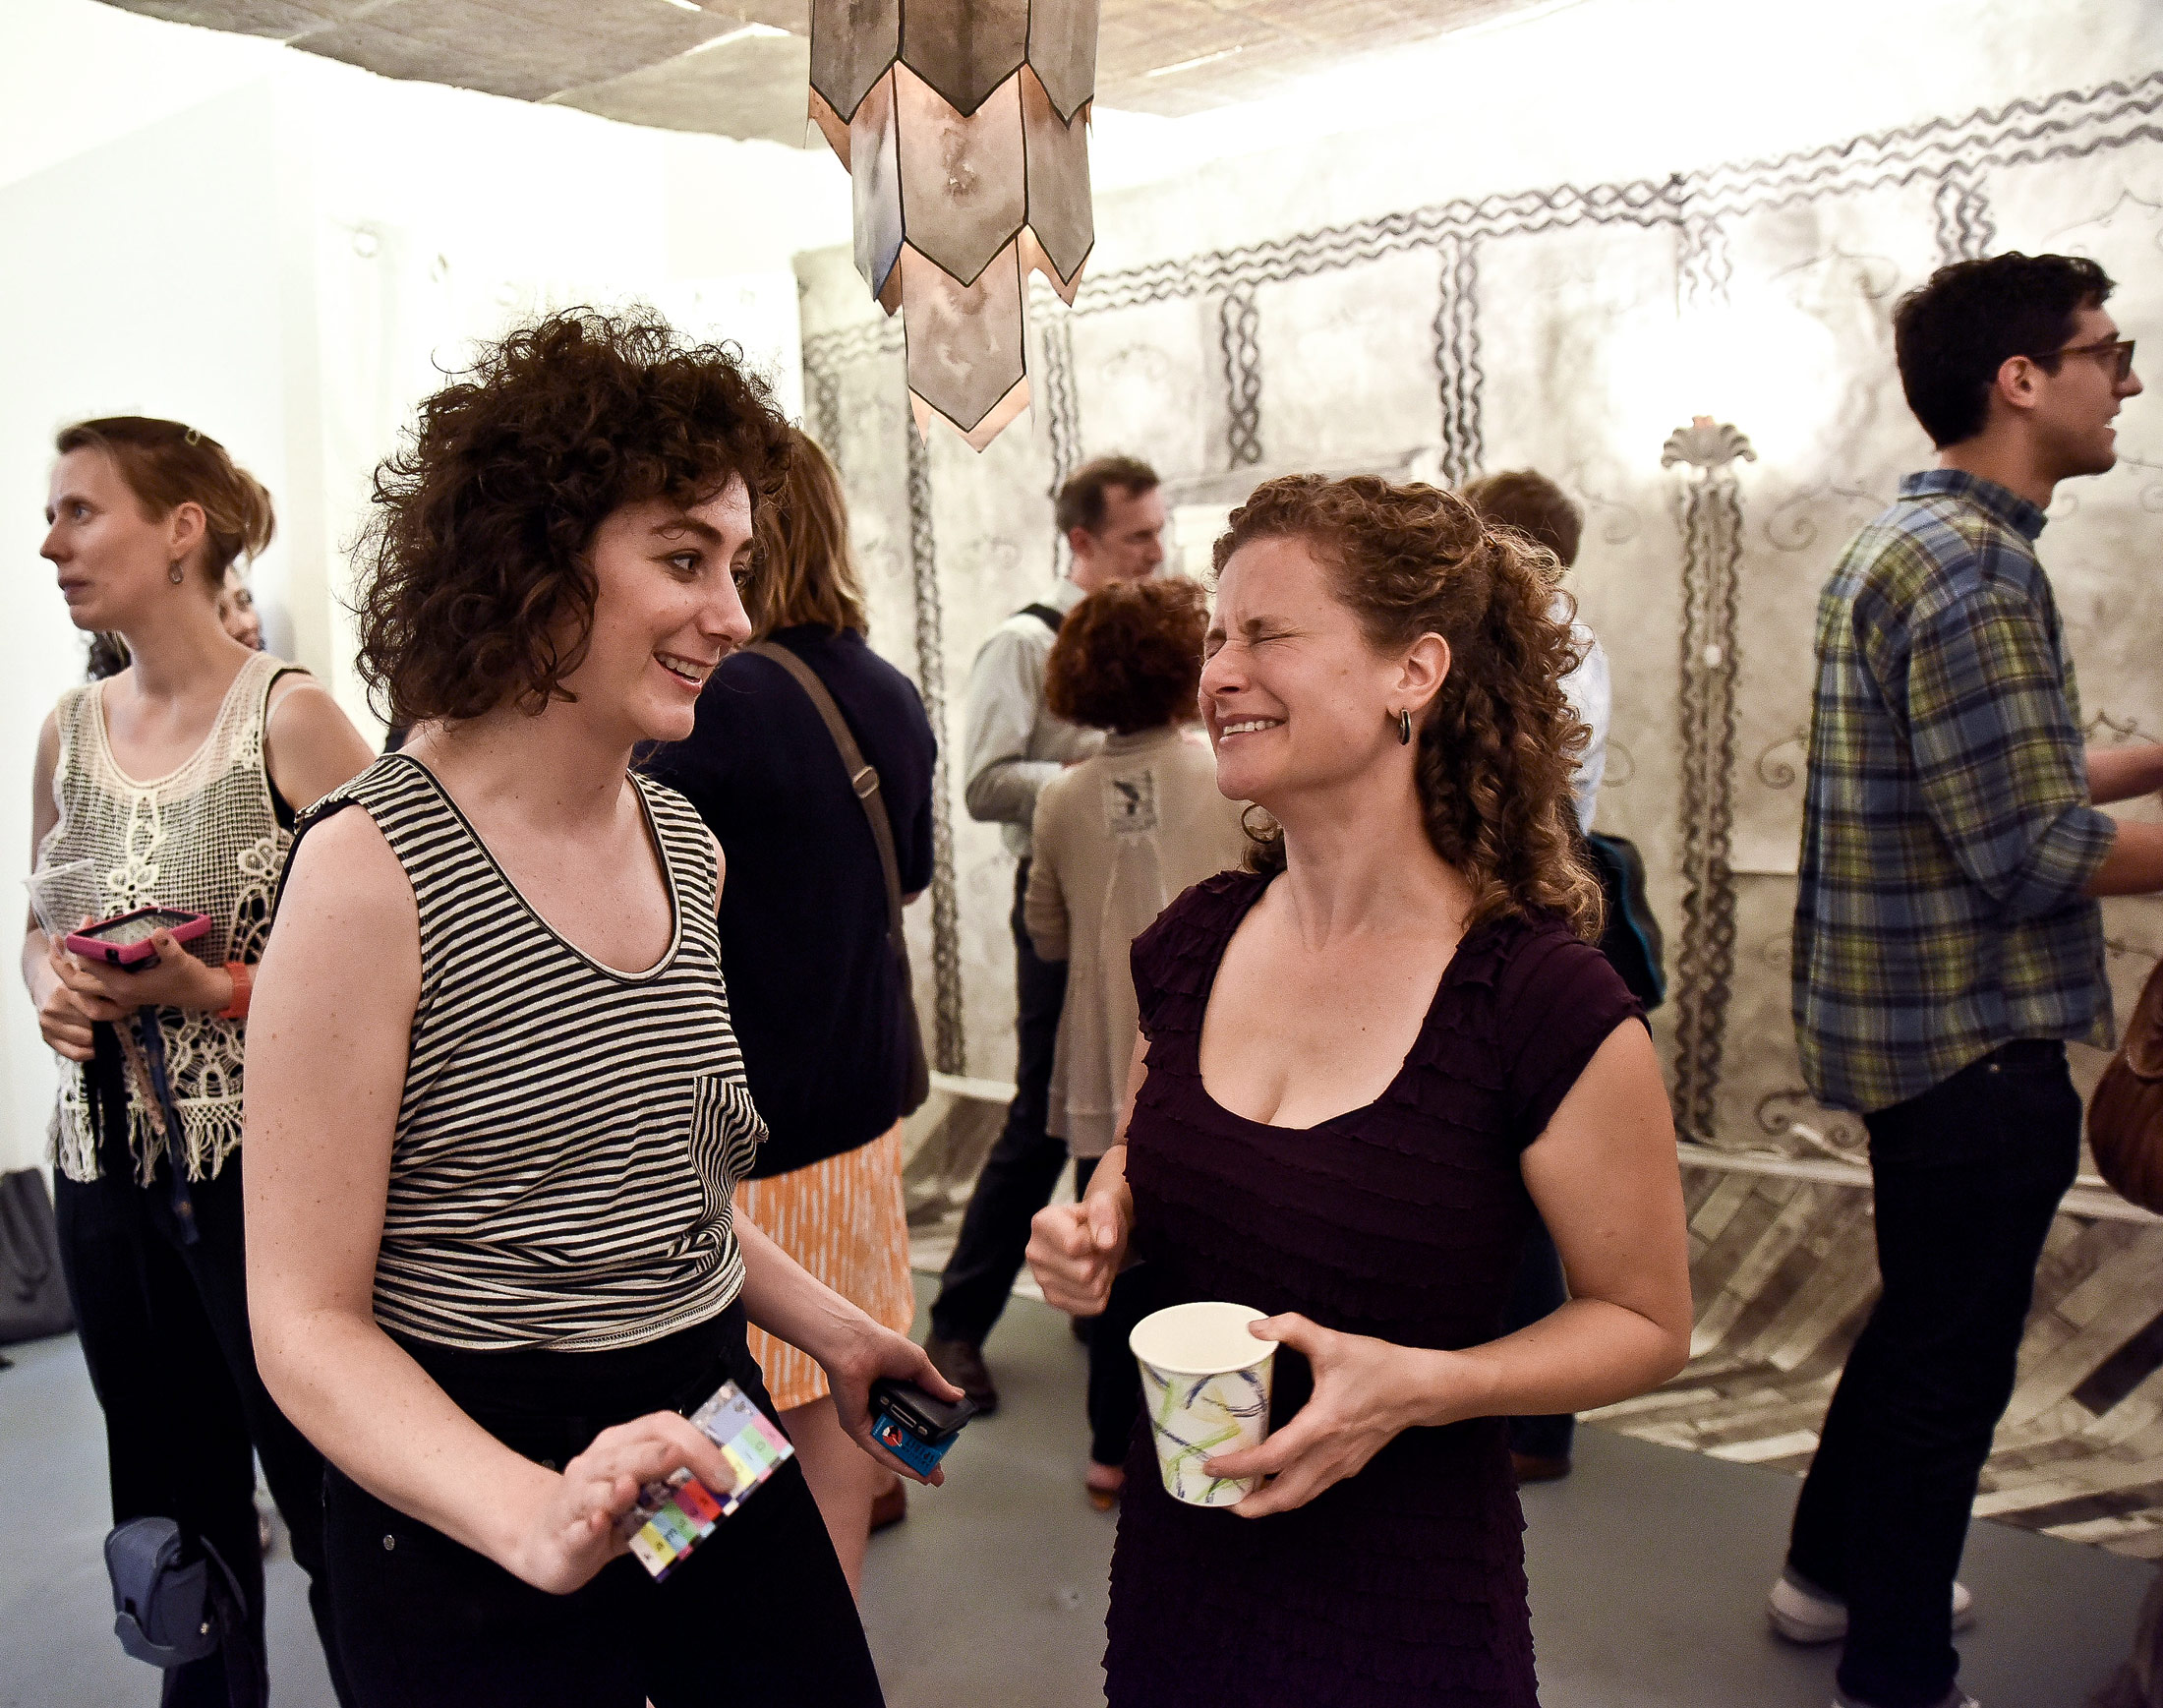 From l to r, Rhombus Space curator Katerina Lanfranco, artist Ashley Garrett and Carrie Rubinstein.